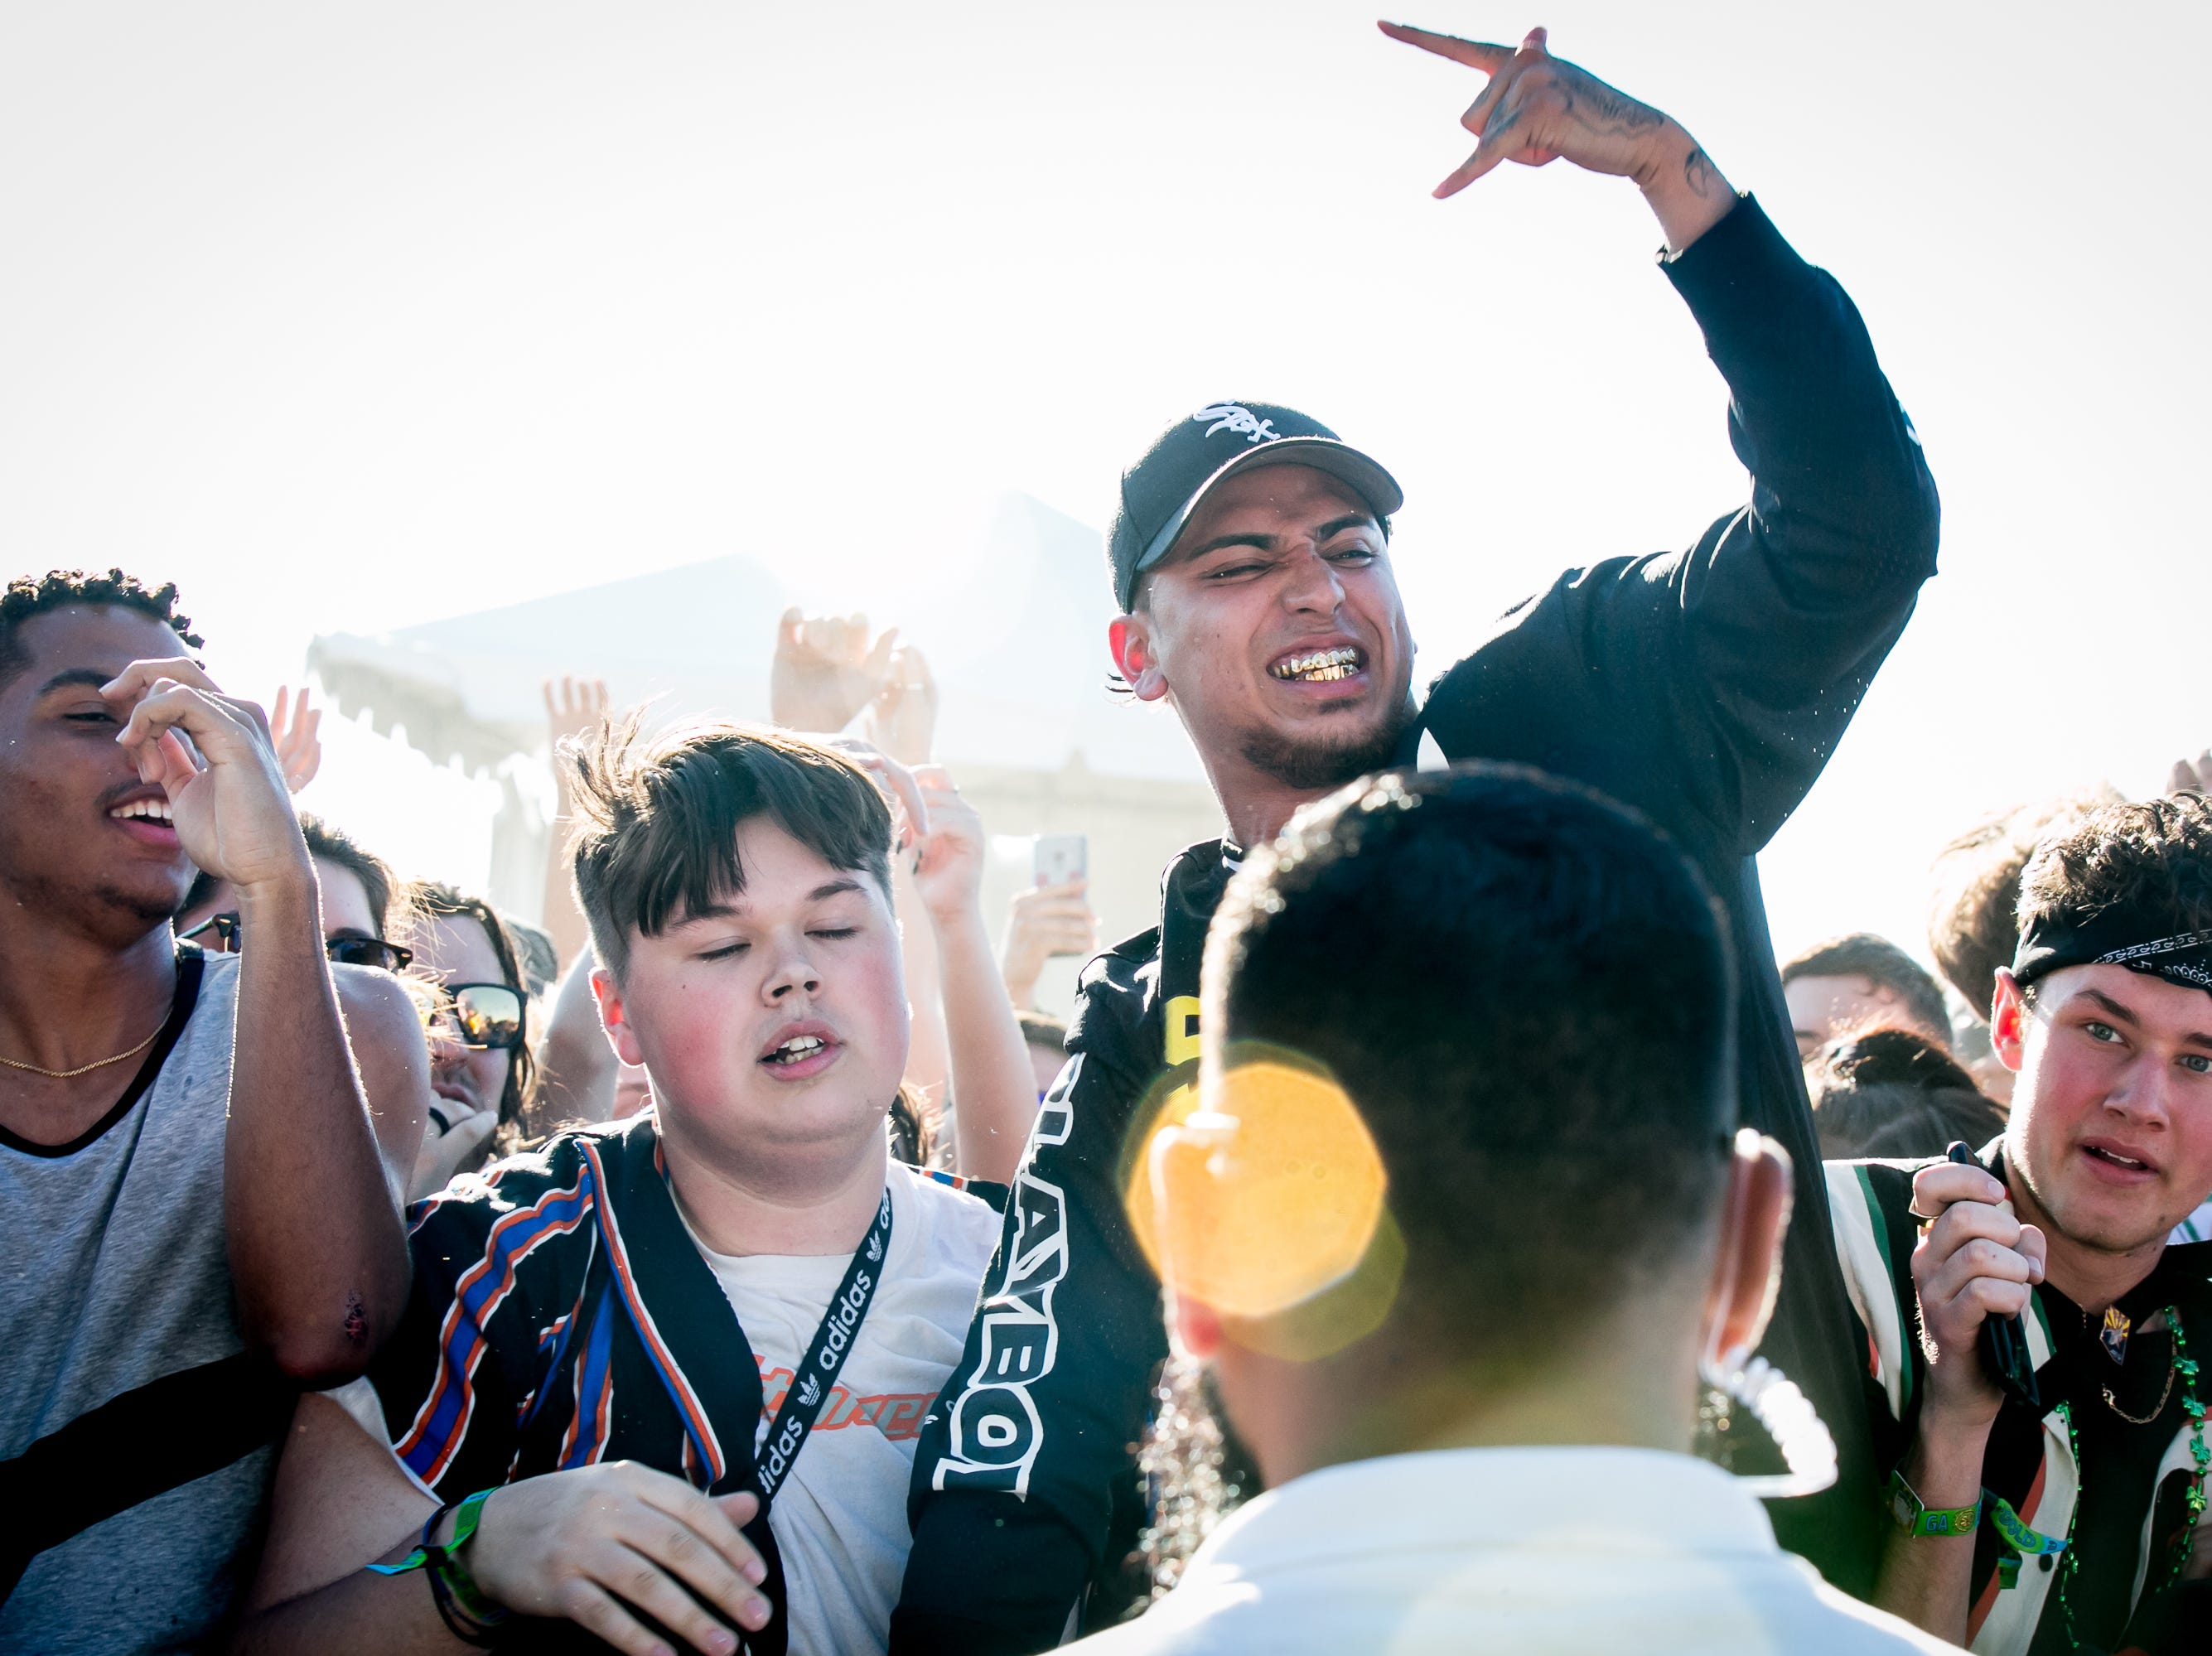 The crowd went all out during Ski Mask The Slump God's set at Pot of Gold Music Festival on Sunday, March 17, 2019.